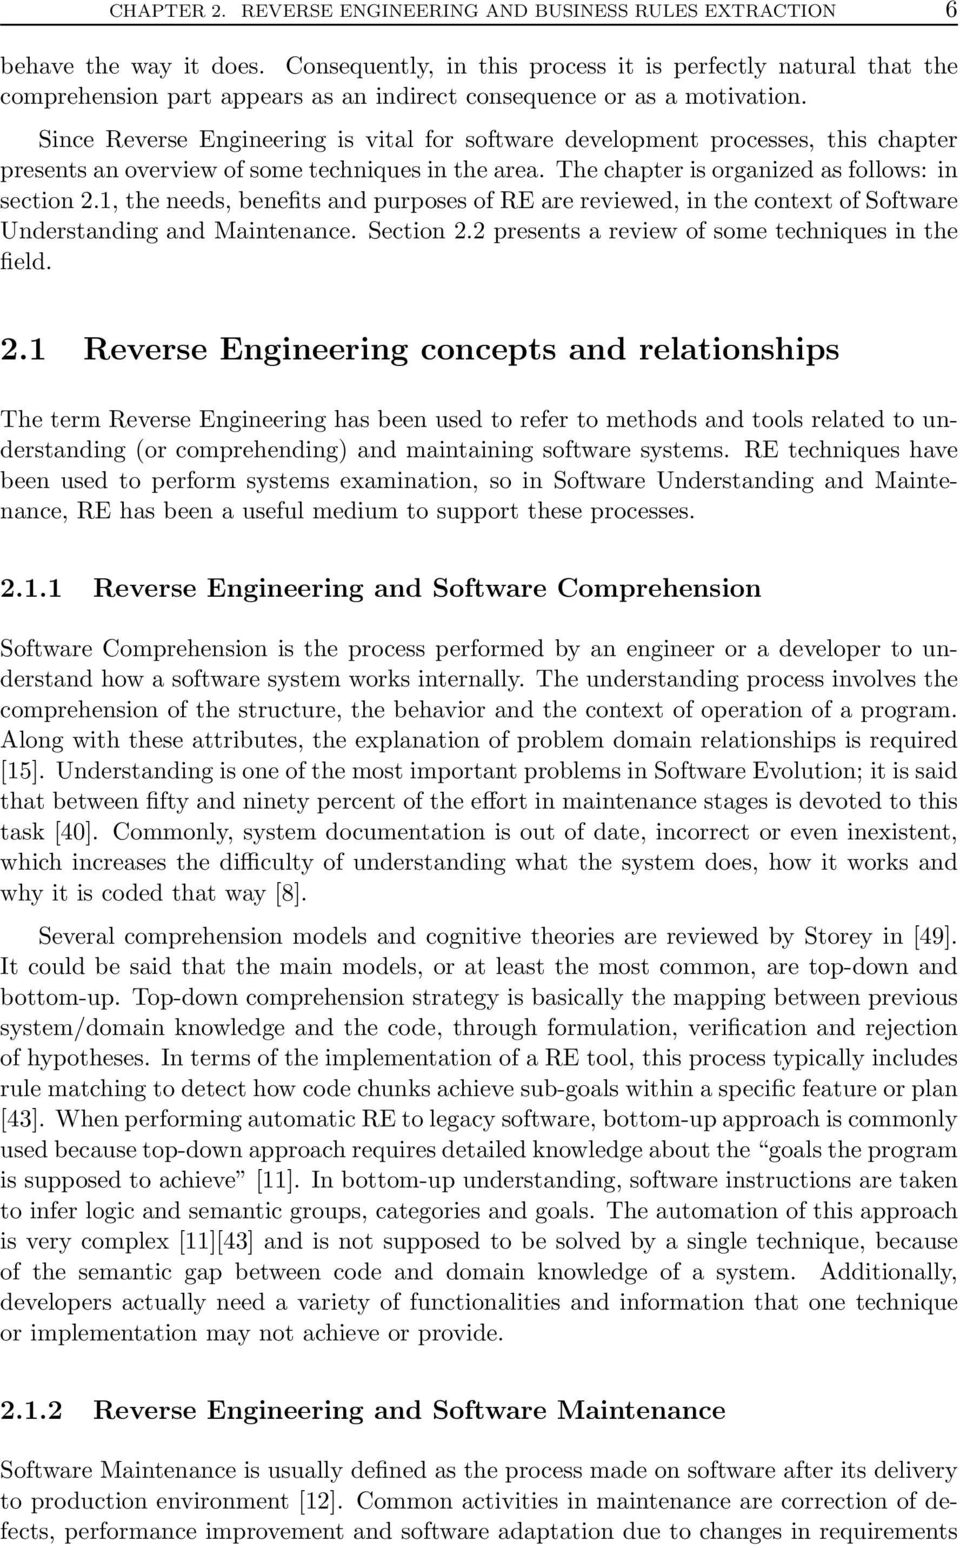 Since Reverse Engineering is vital for software development processes, this chapter presents an overview of some techniques in the area. The chapter is organized as follows: in section 2.